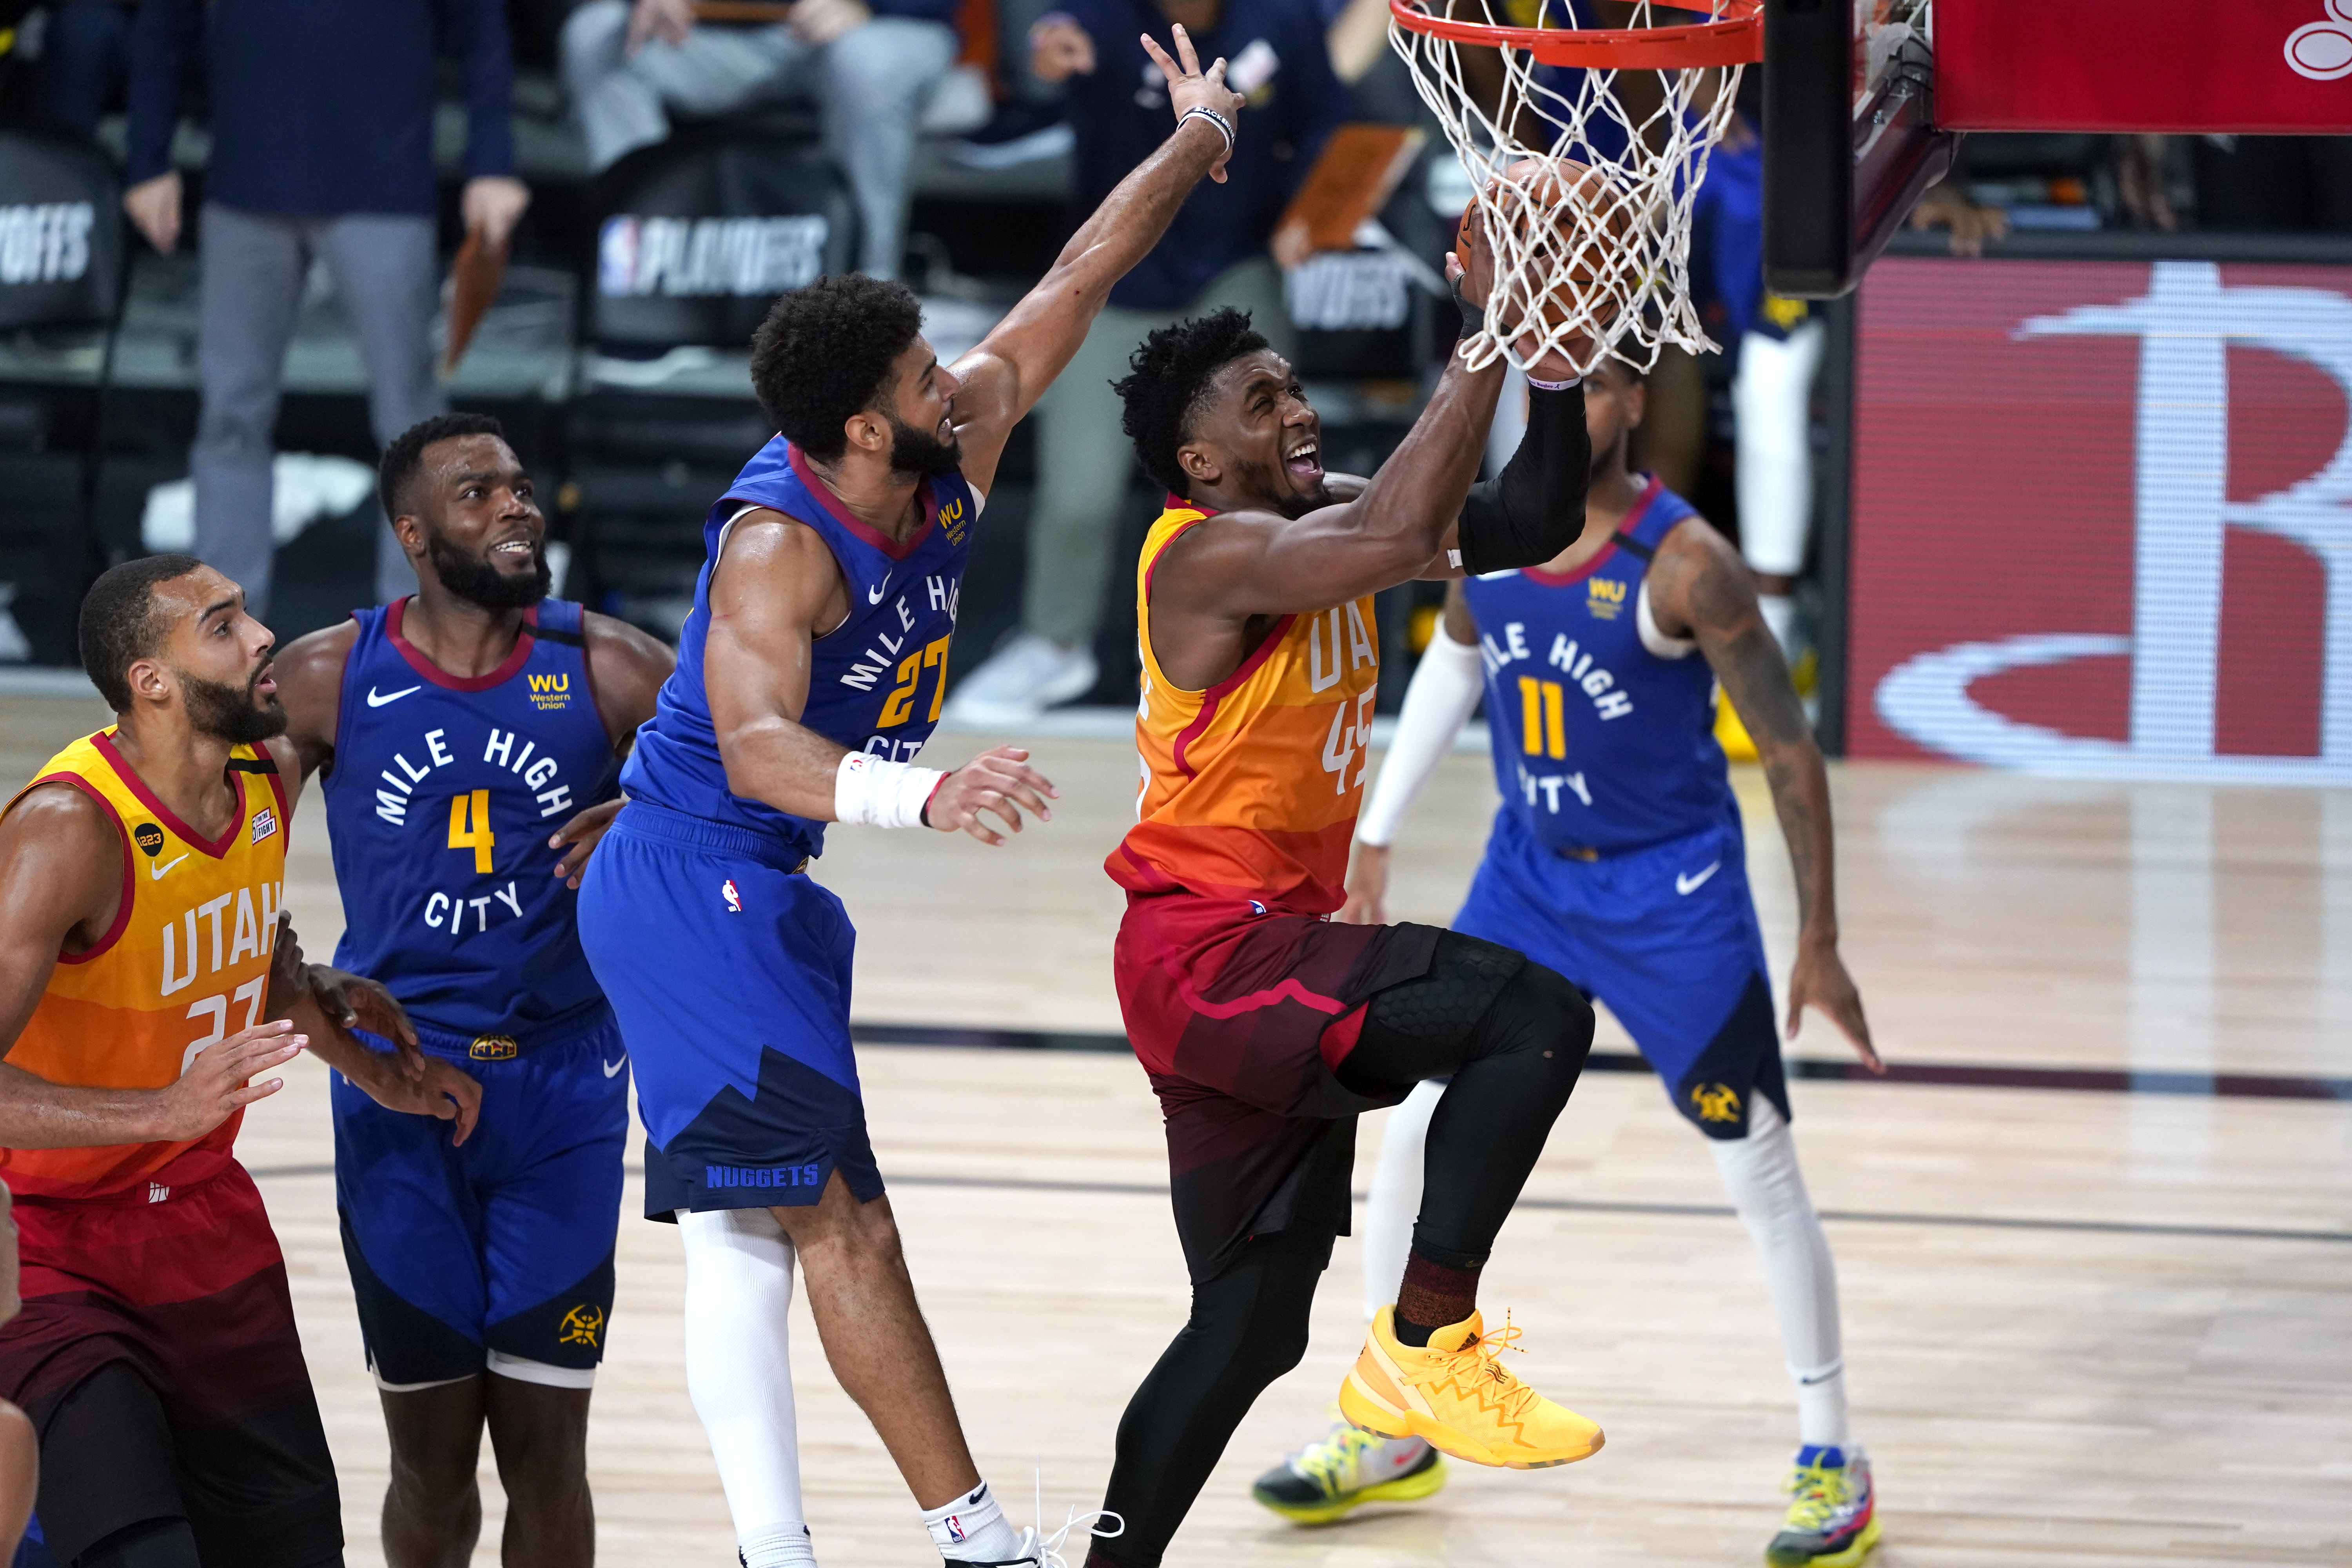 Utah Jazz's Donovan Mitchell (45) goes up for a shot as Denver Nuggets' Jamal Murray (27) defends during the second half of an NBA basketball first round playoff game Sunday, Aug. 23, 2020, in Lake Buena Vista, Fla. (AP Photo/Ashley Landis, Pool)